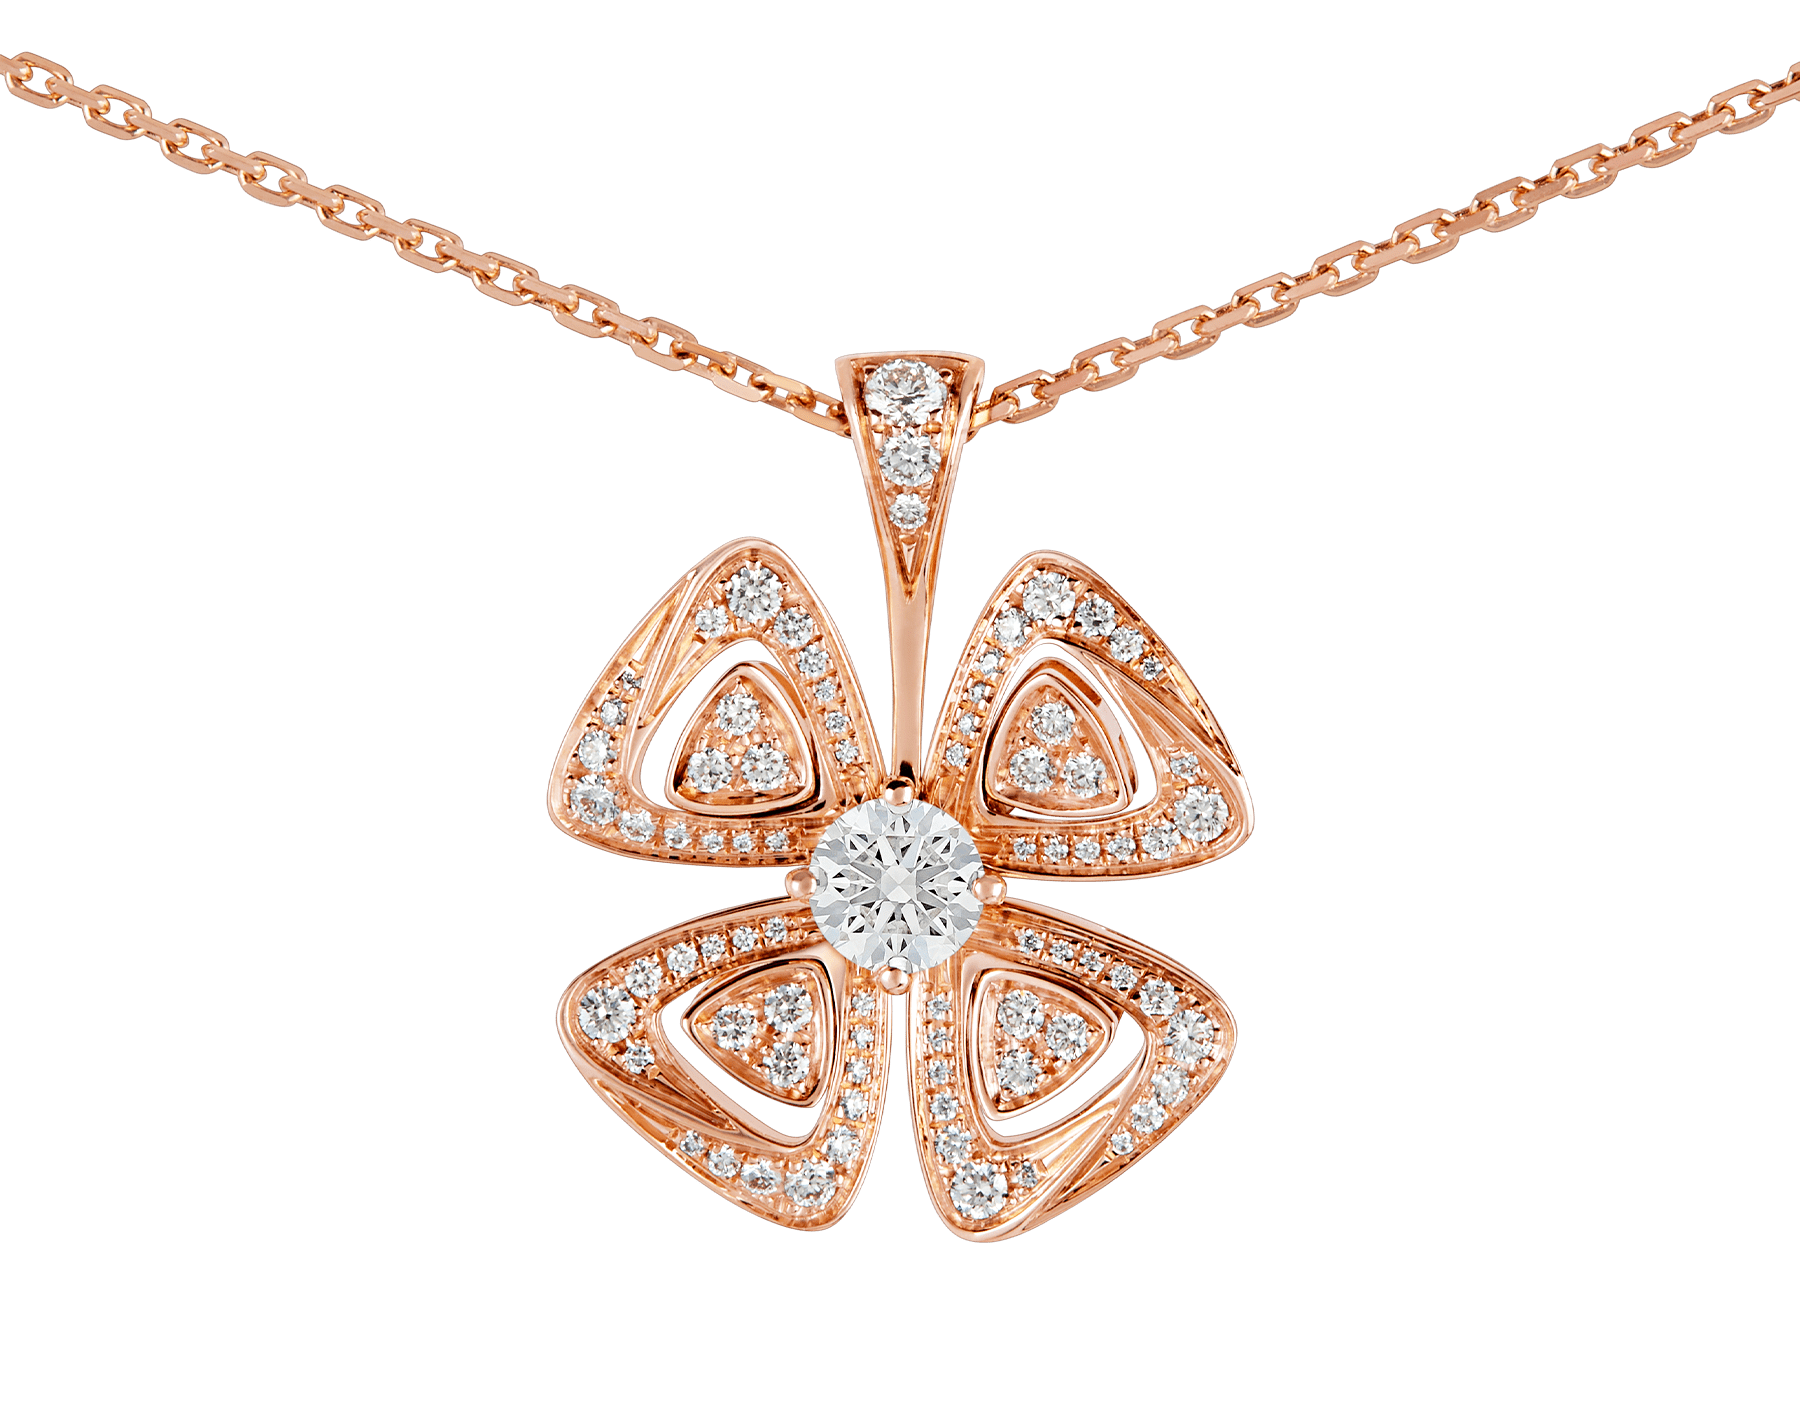 Collier Fiorever en or rose 18 K serti d'un diamant de centre avec pavé diamants 355885 image 3